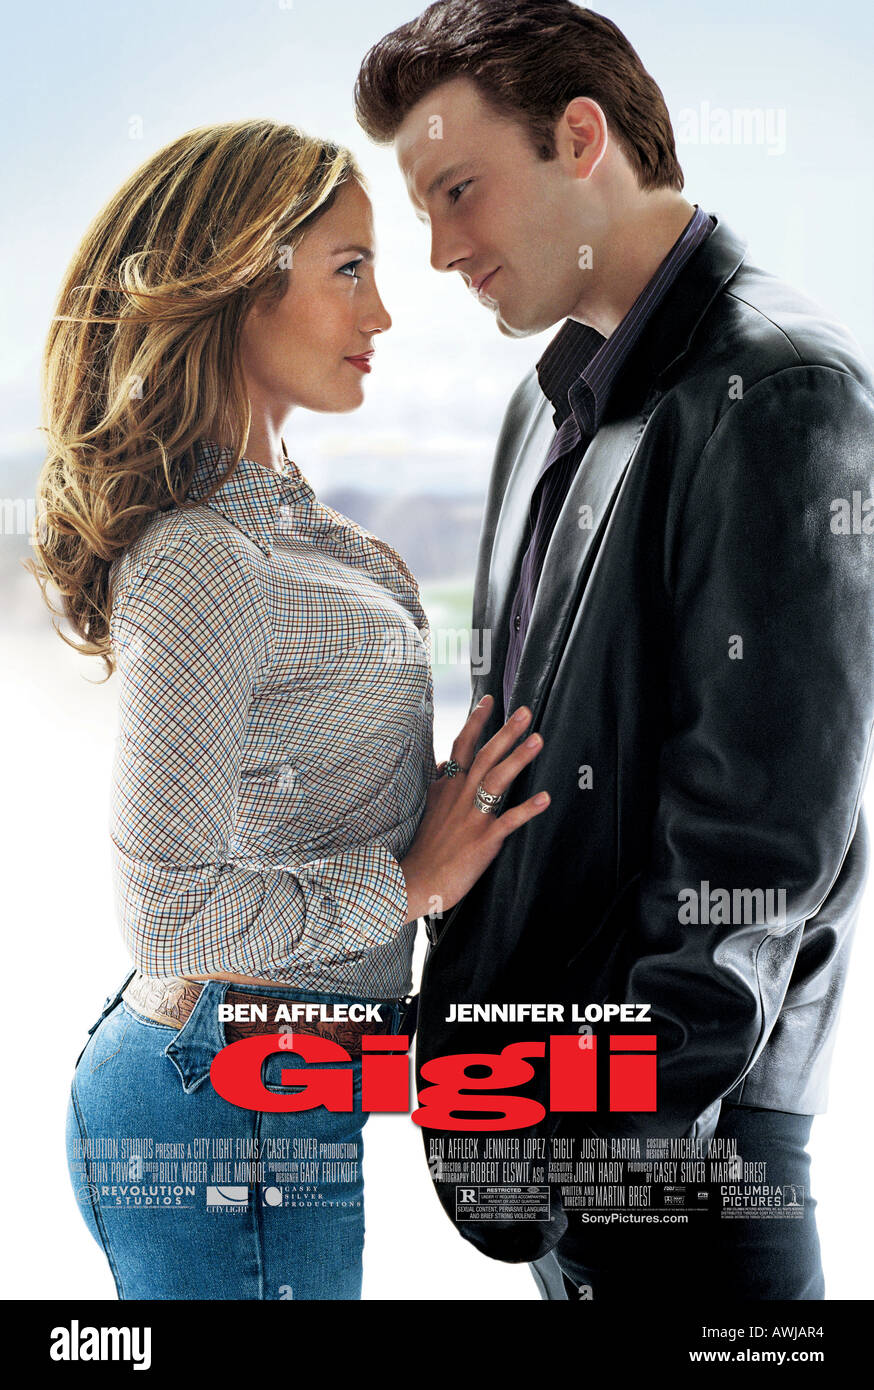 GIGLI  poster for 2003 Columbia film with Jennifer Lopez and Ben Affleck - Stock Image